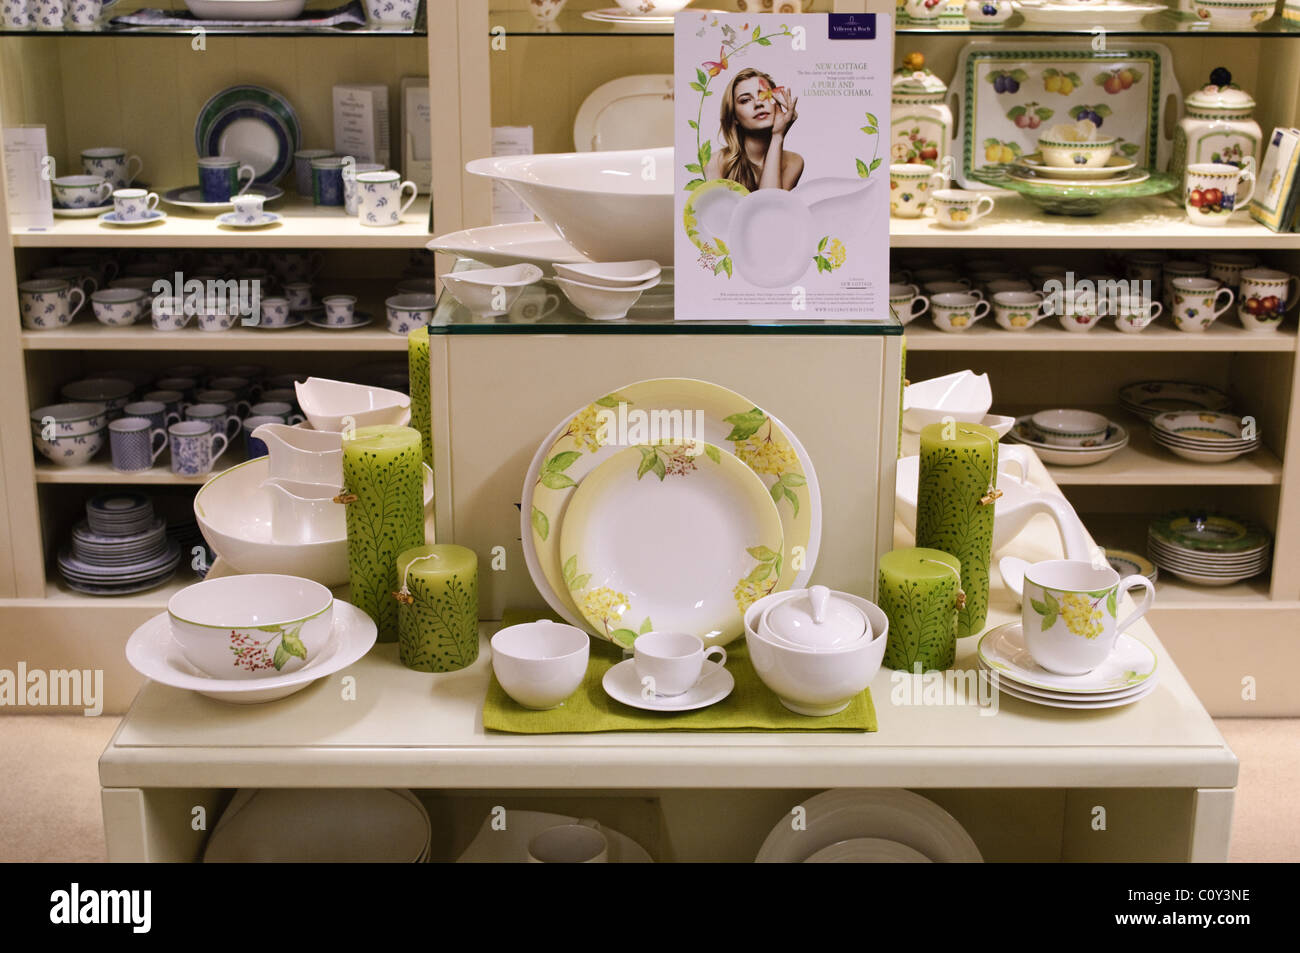 villeroy boch tableware on display in a china shop stock photo royalty free image 35016394. Black Bedroom Furniture Sets. Home Design Ideas